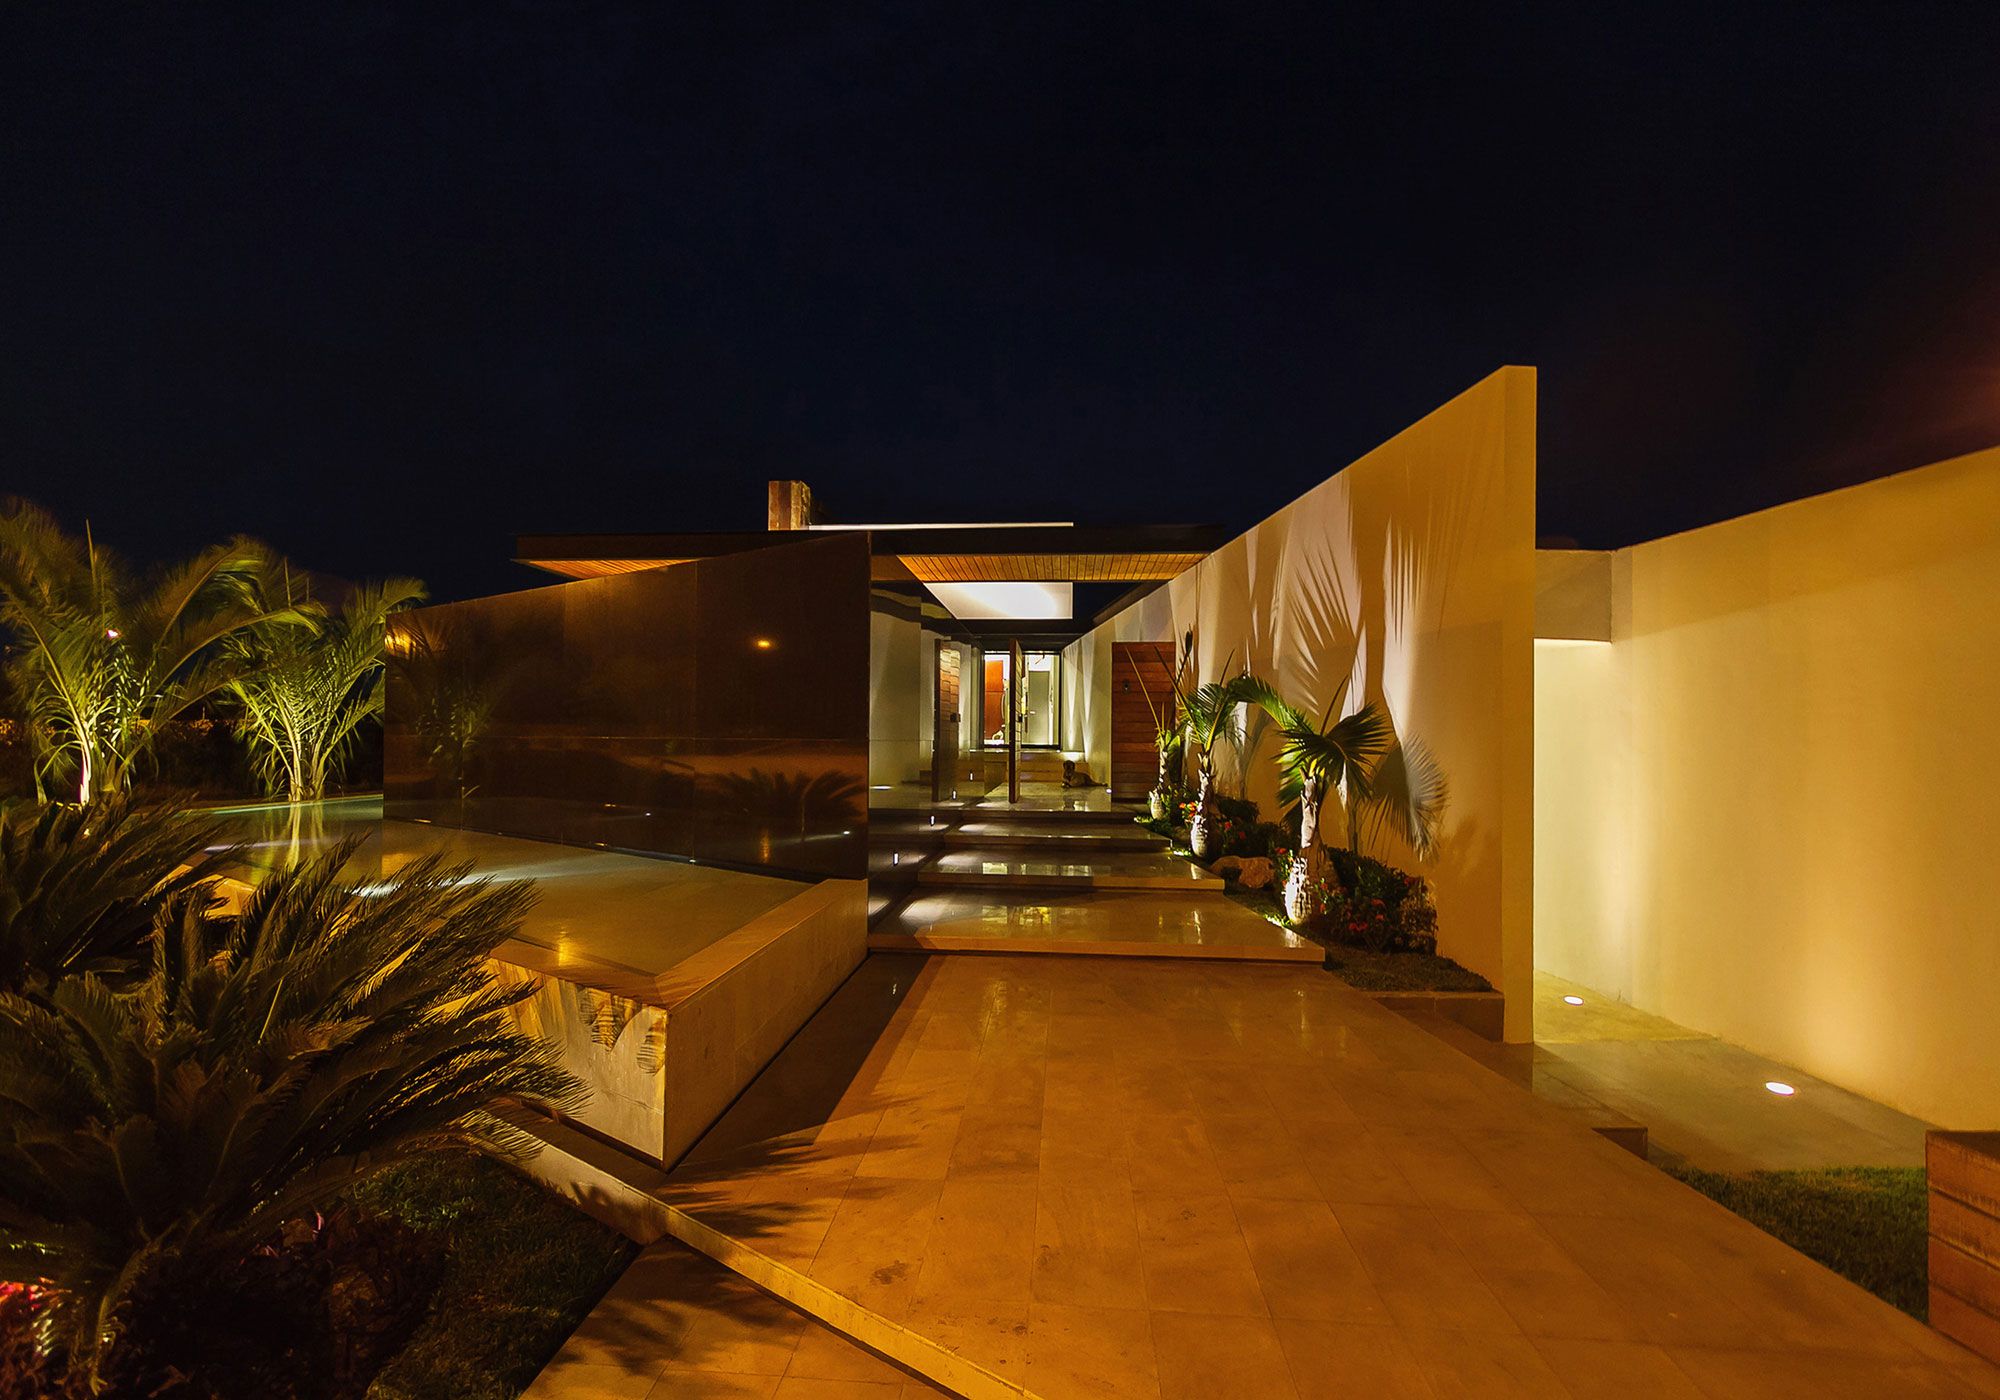 Entrance, Evening, Lighting, Water Feature, Contemporary Residence in Merida, Yucatan